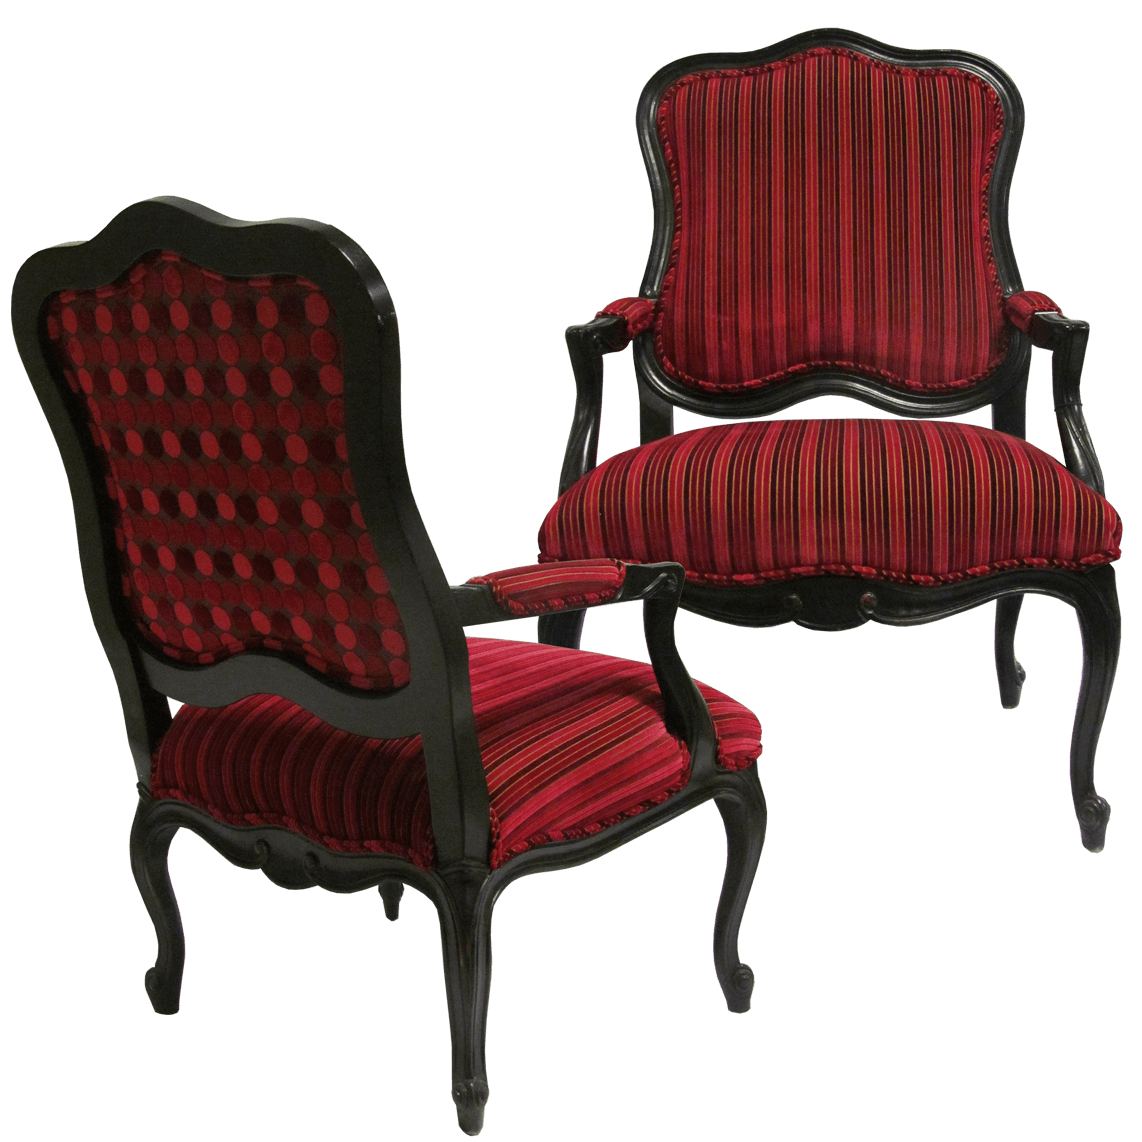 louis xv style fauteuil arm chairs 2. Black Bedroom Furniture Sets. Home Design Ideas